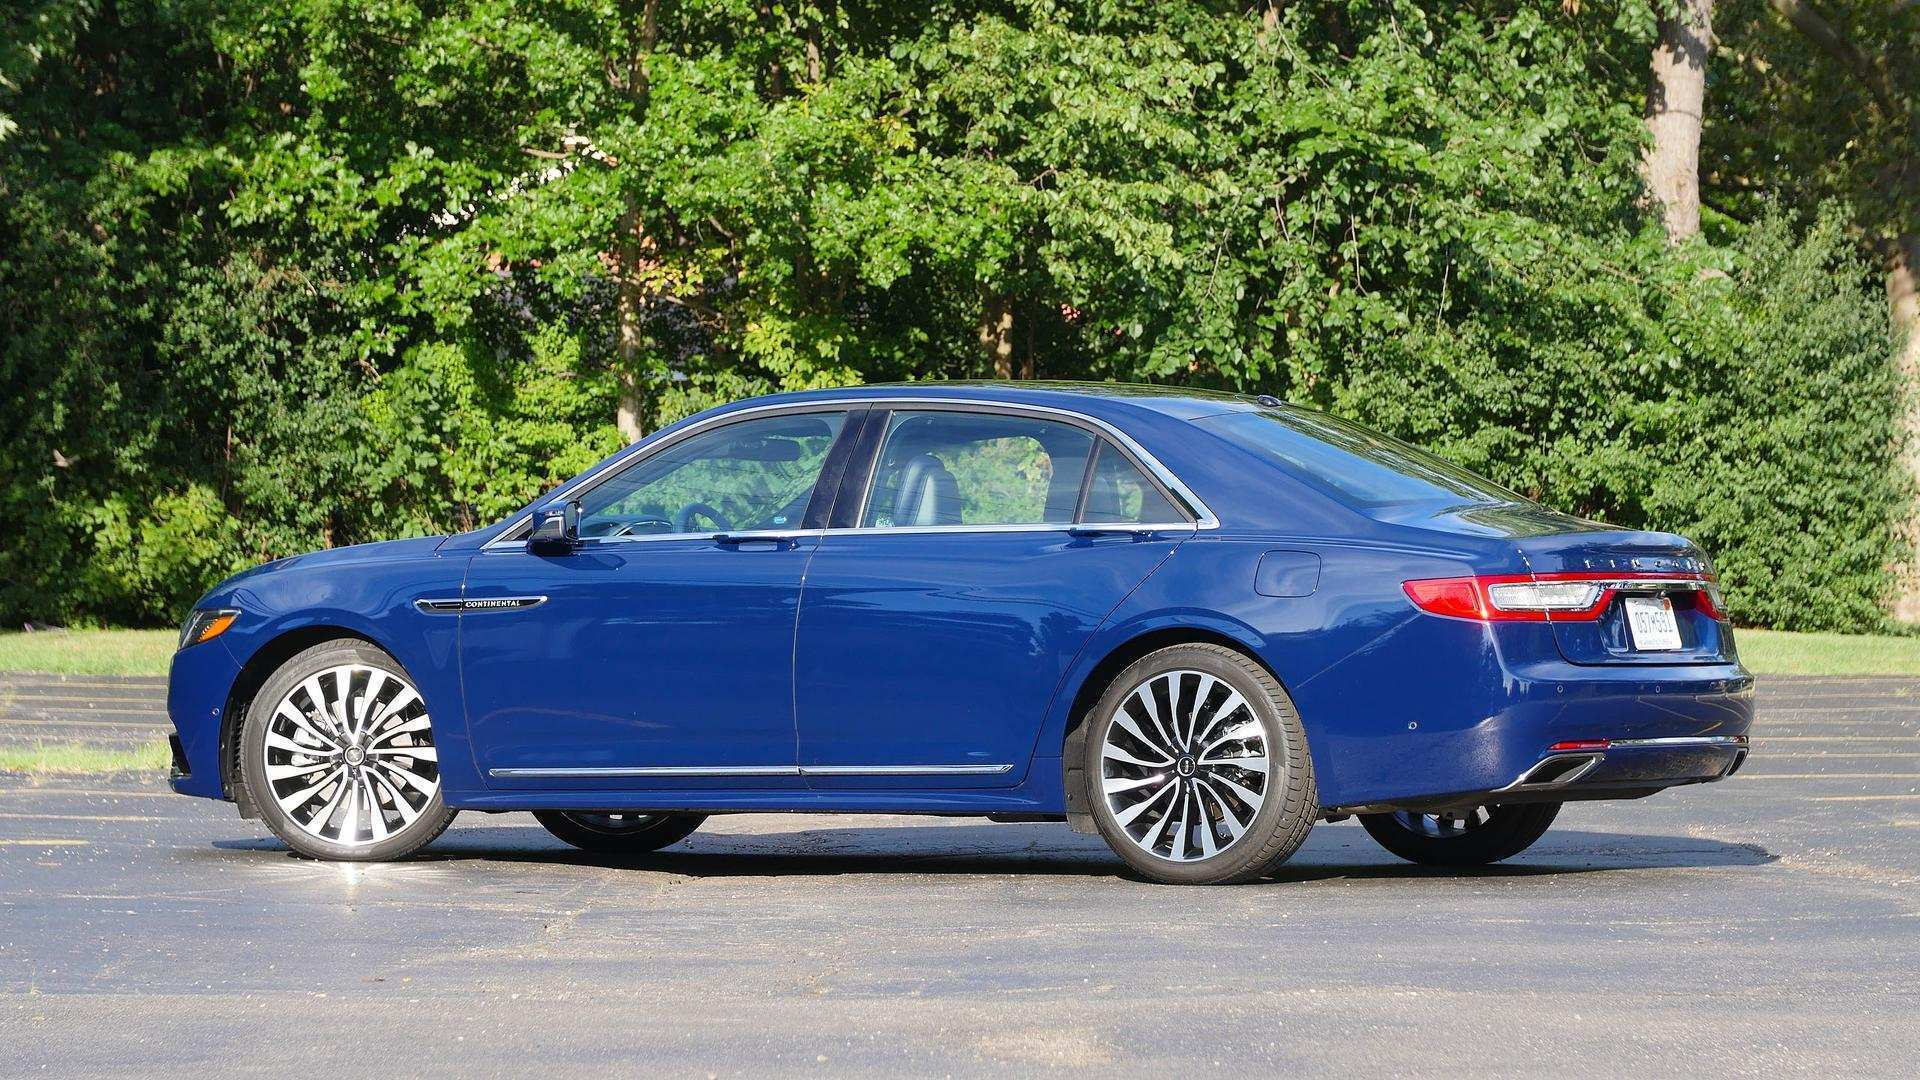 21 The Best 2020 Lincoln Continental Photos